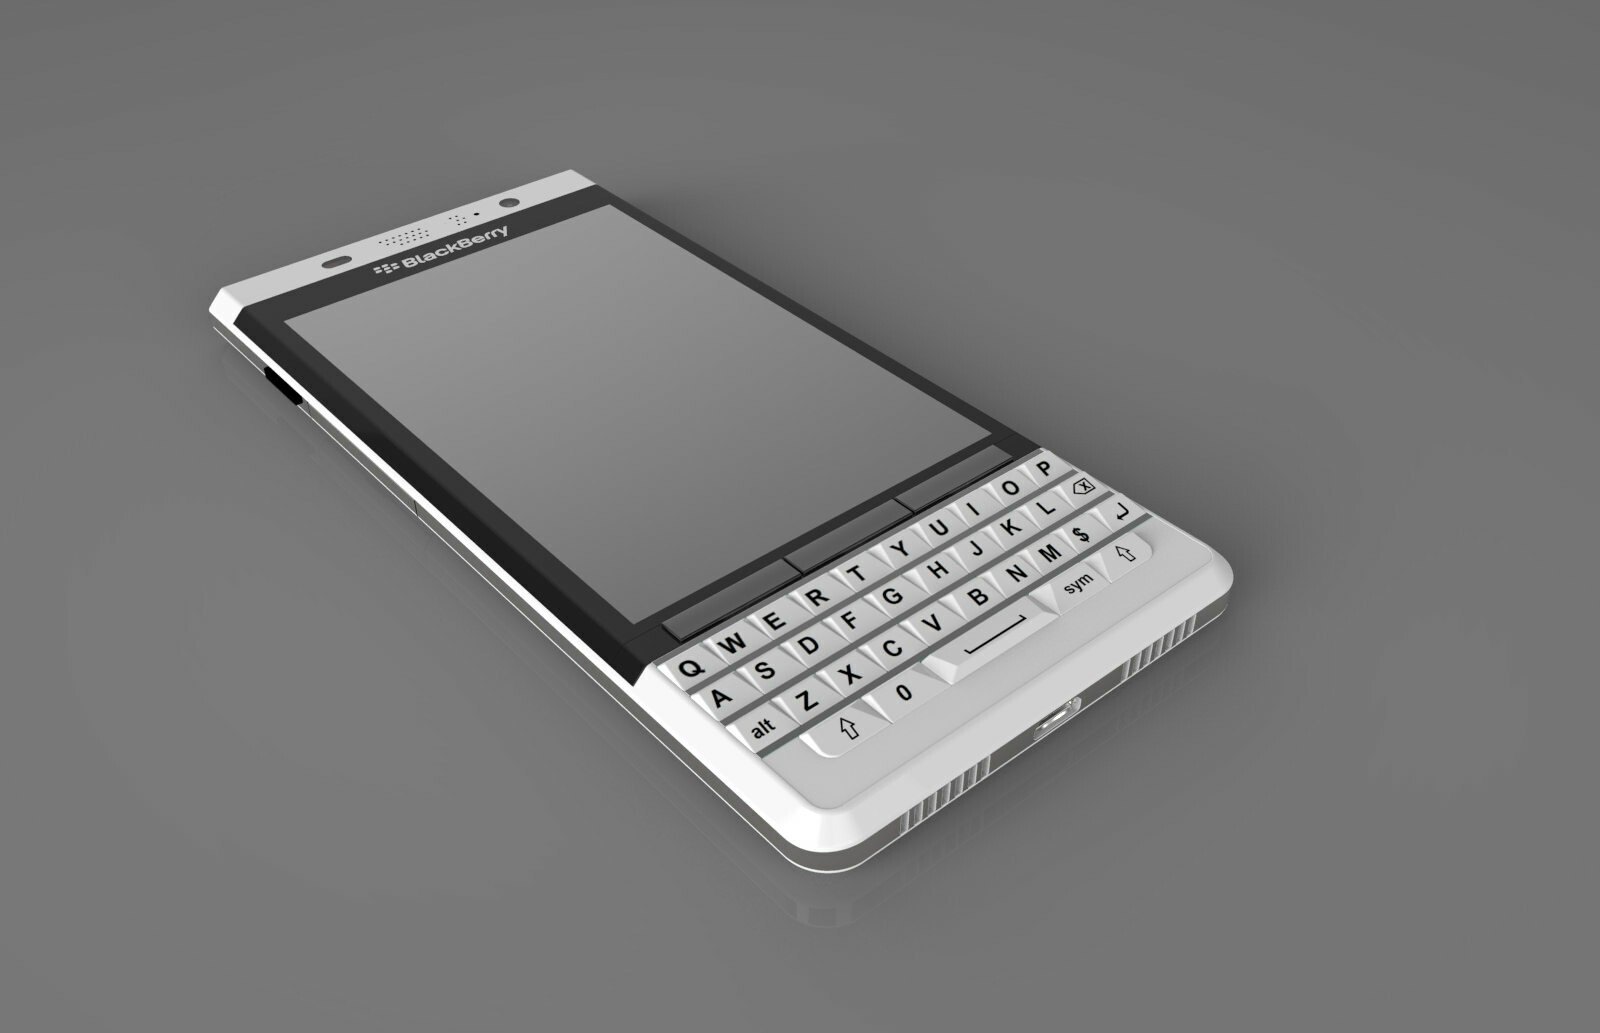 Fan renders offer another take on the BlackBerry Vienna